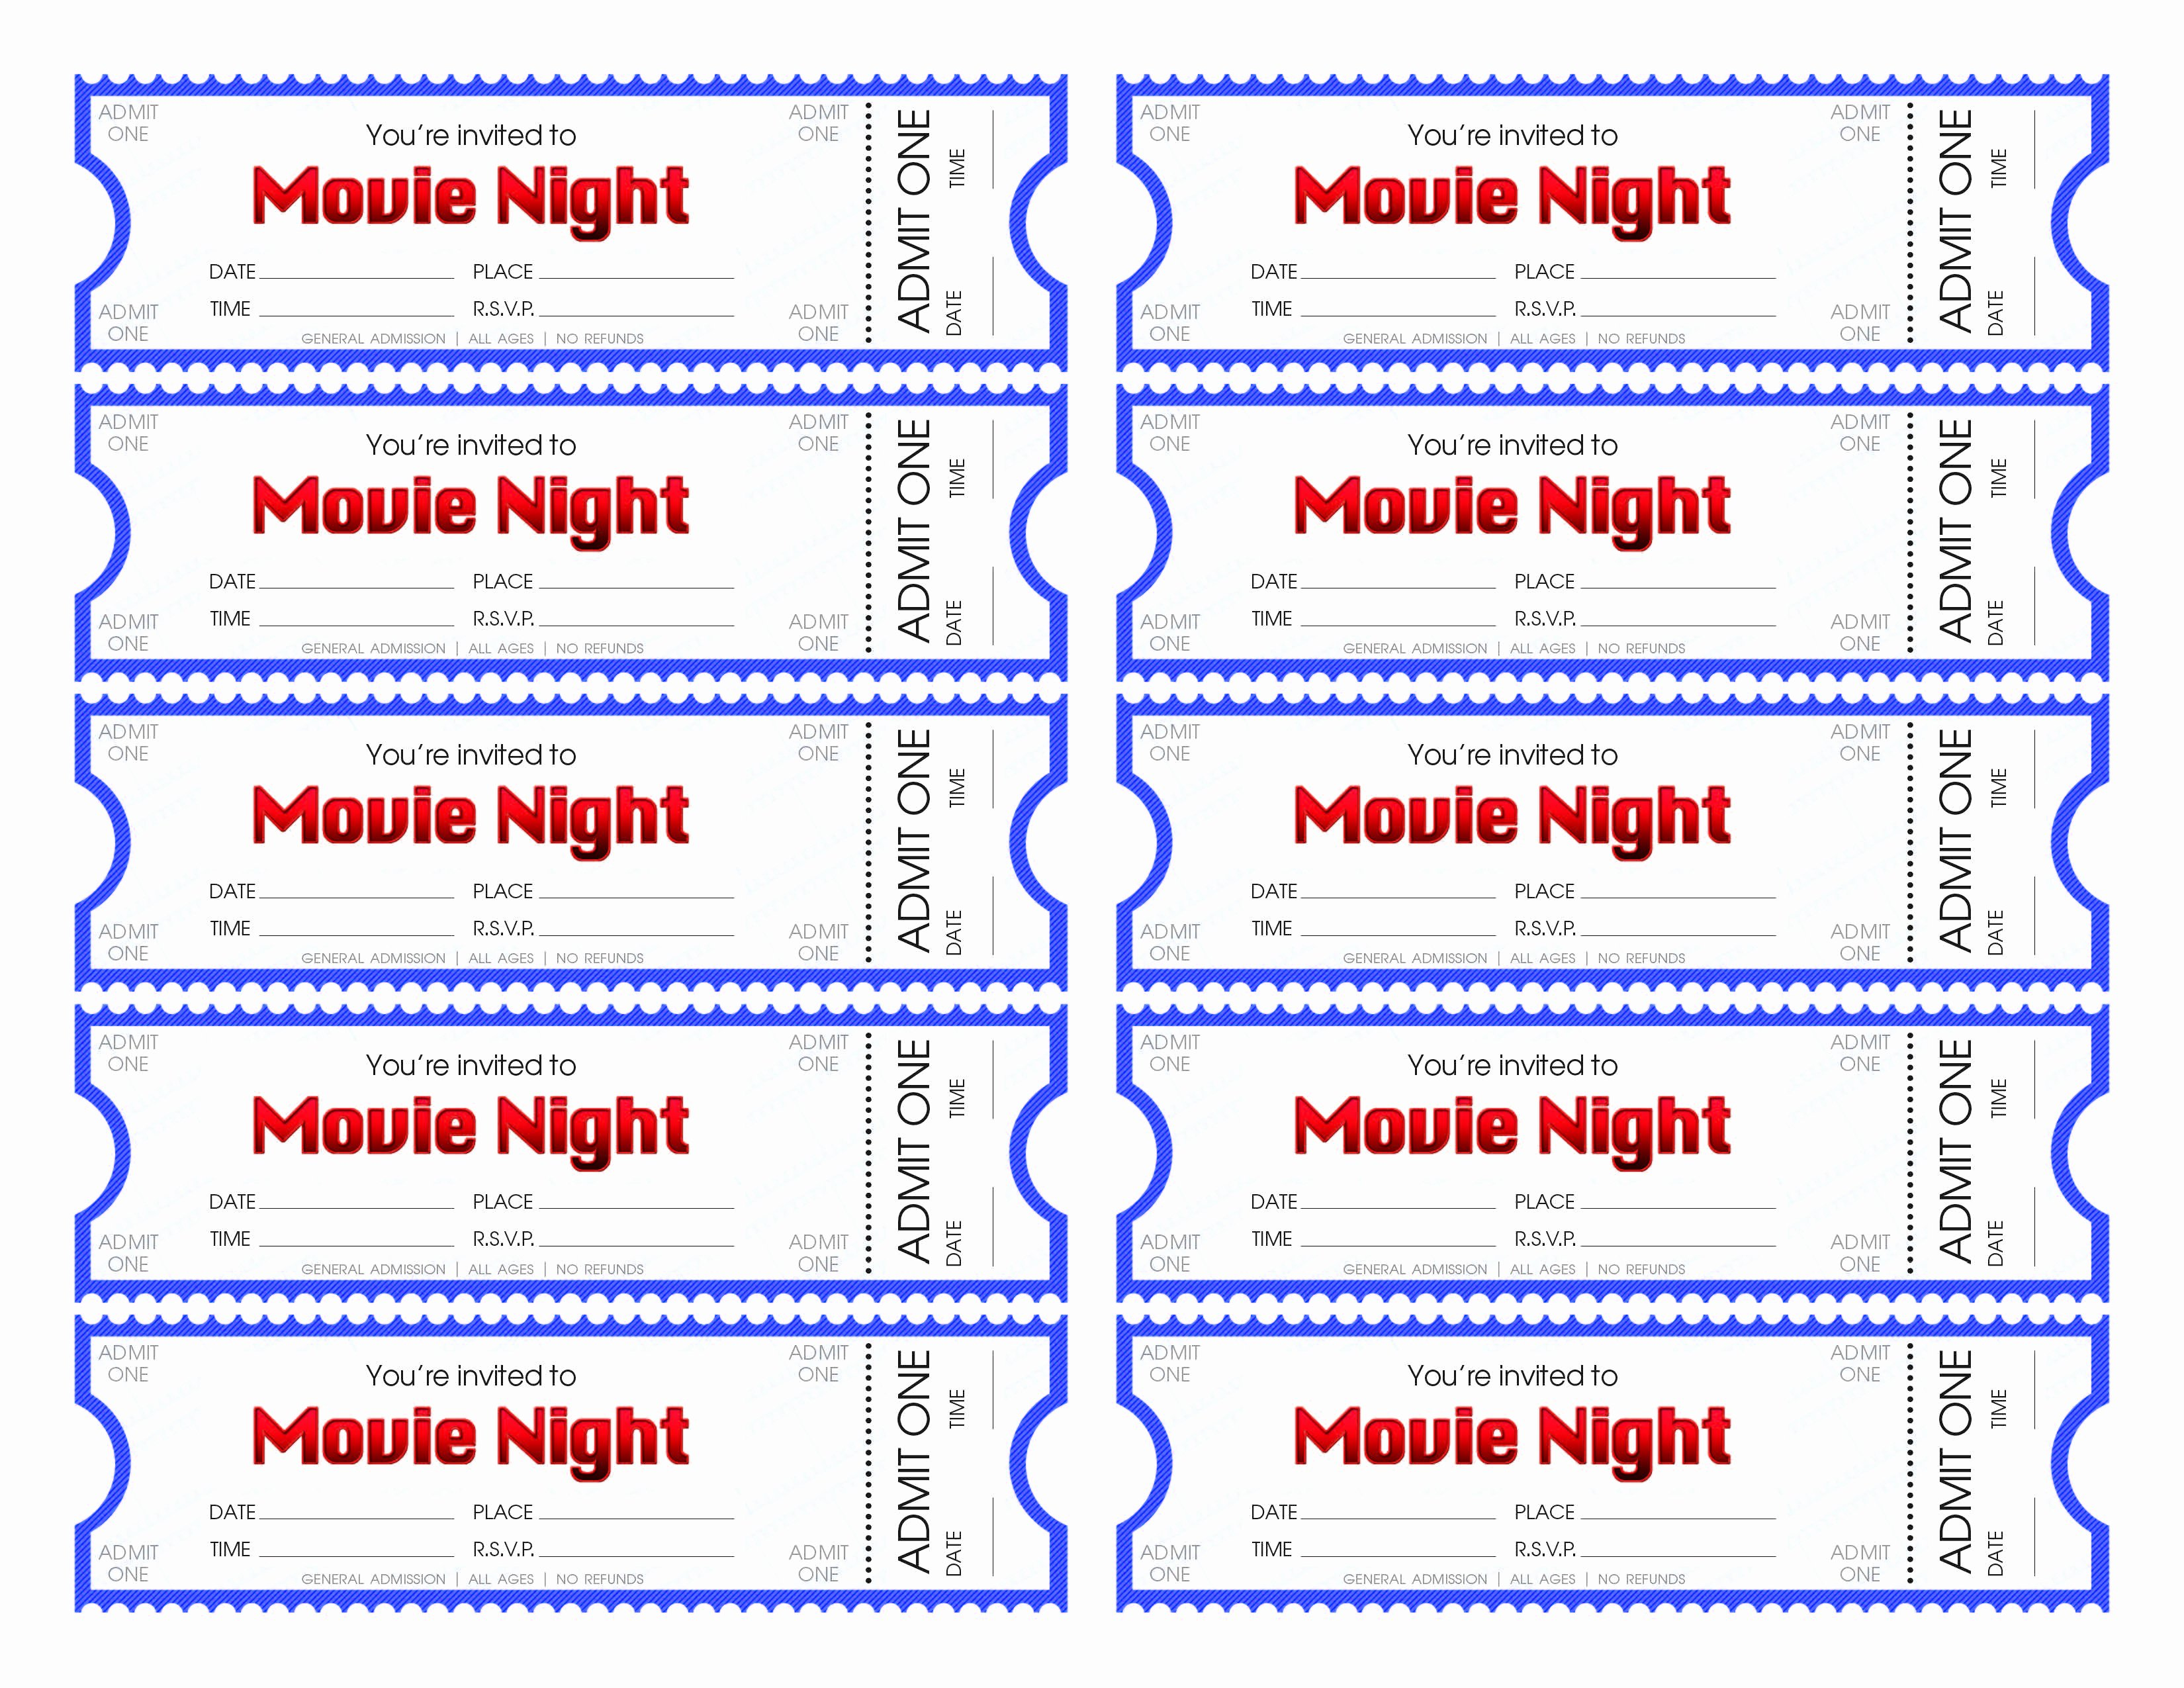 Movie Ticket Template Word Awesome Make Your Own Movie Night Tickets